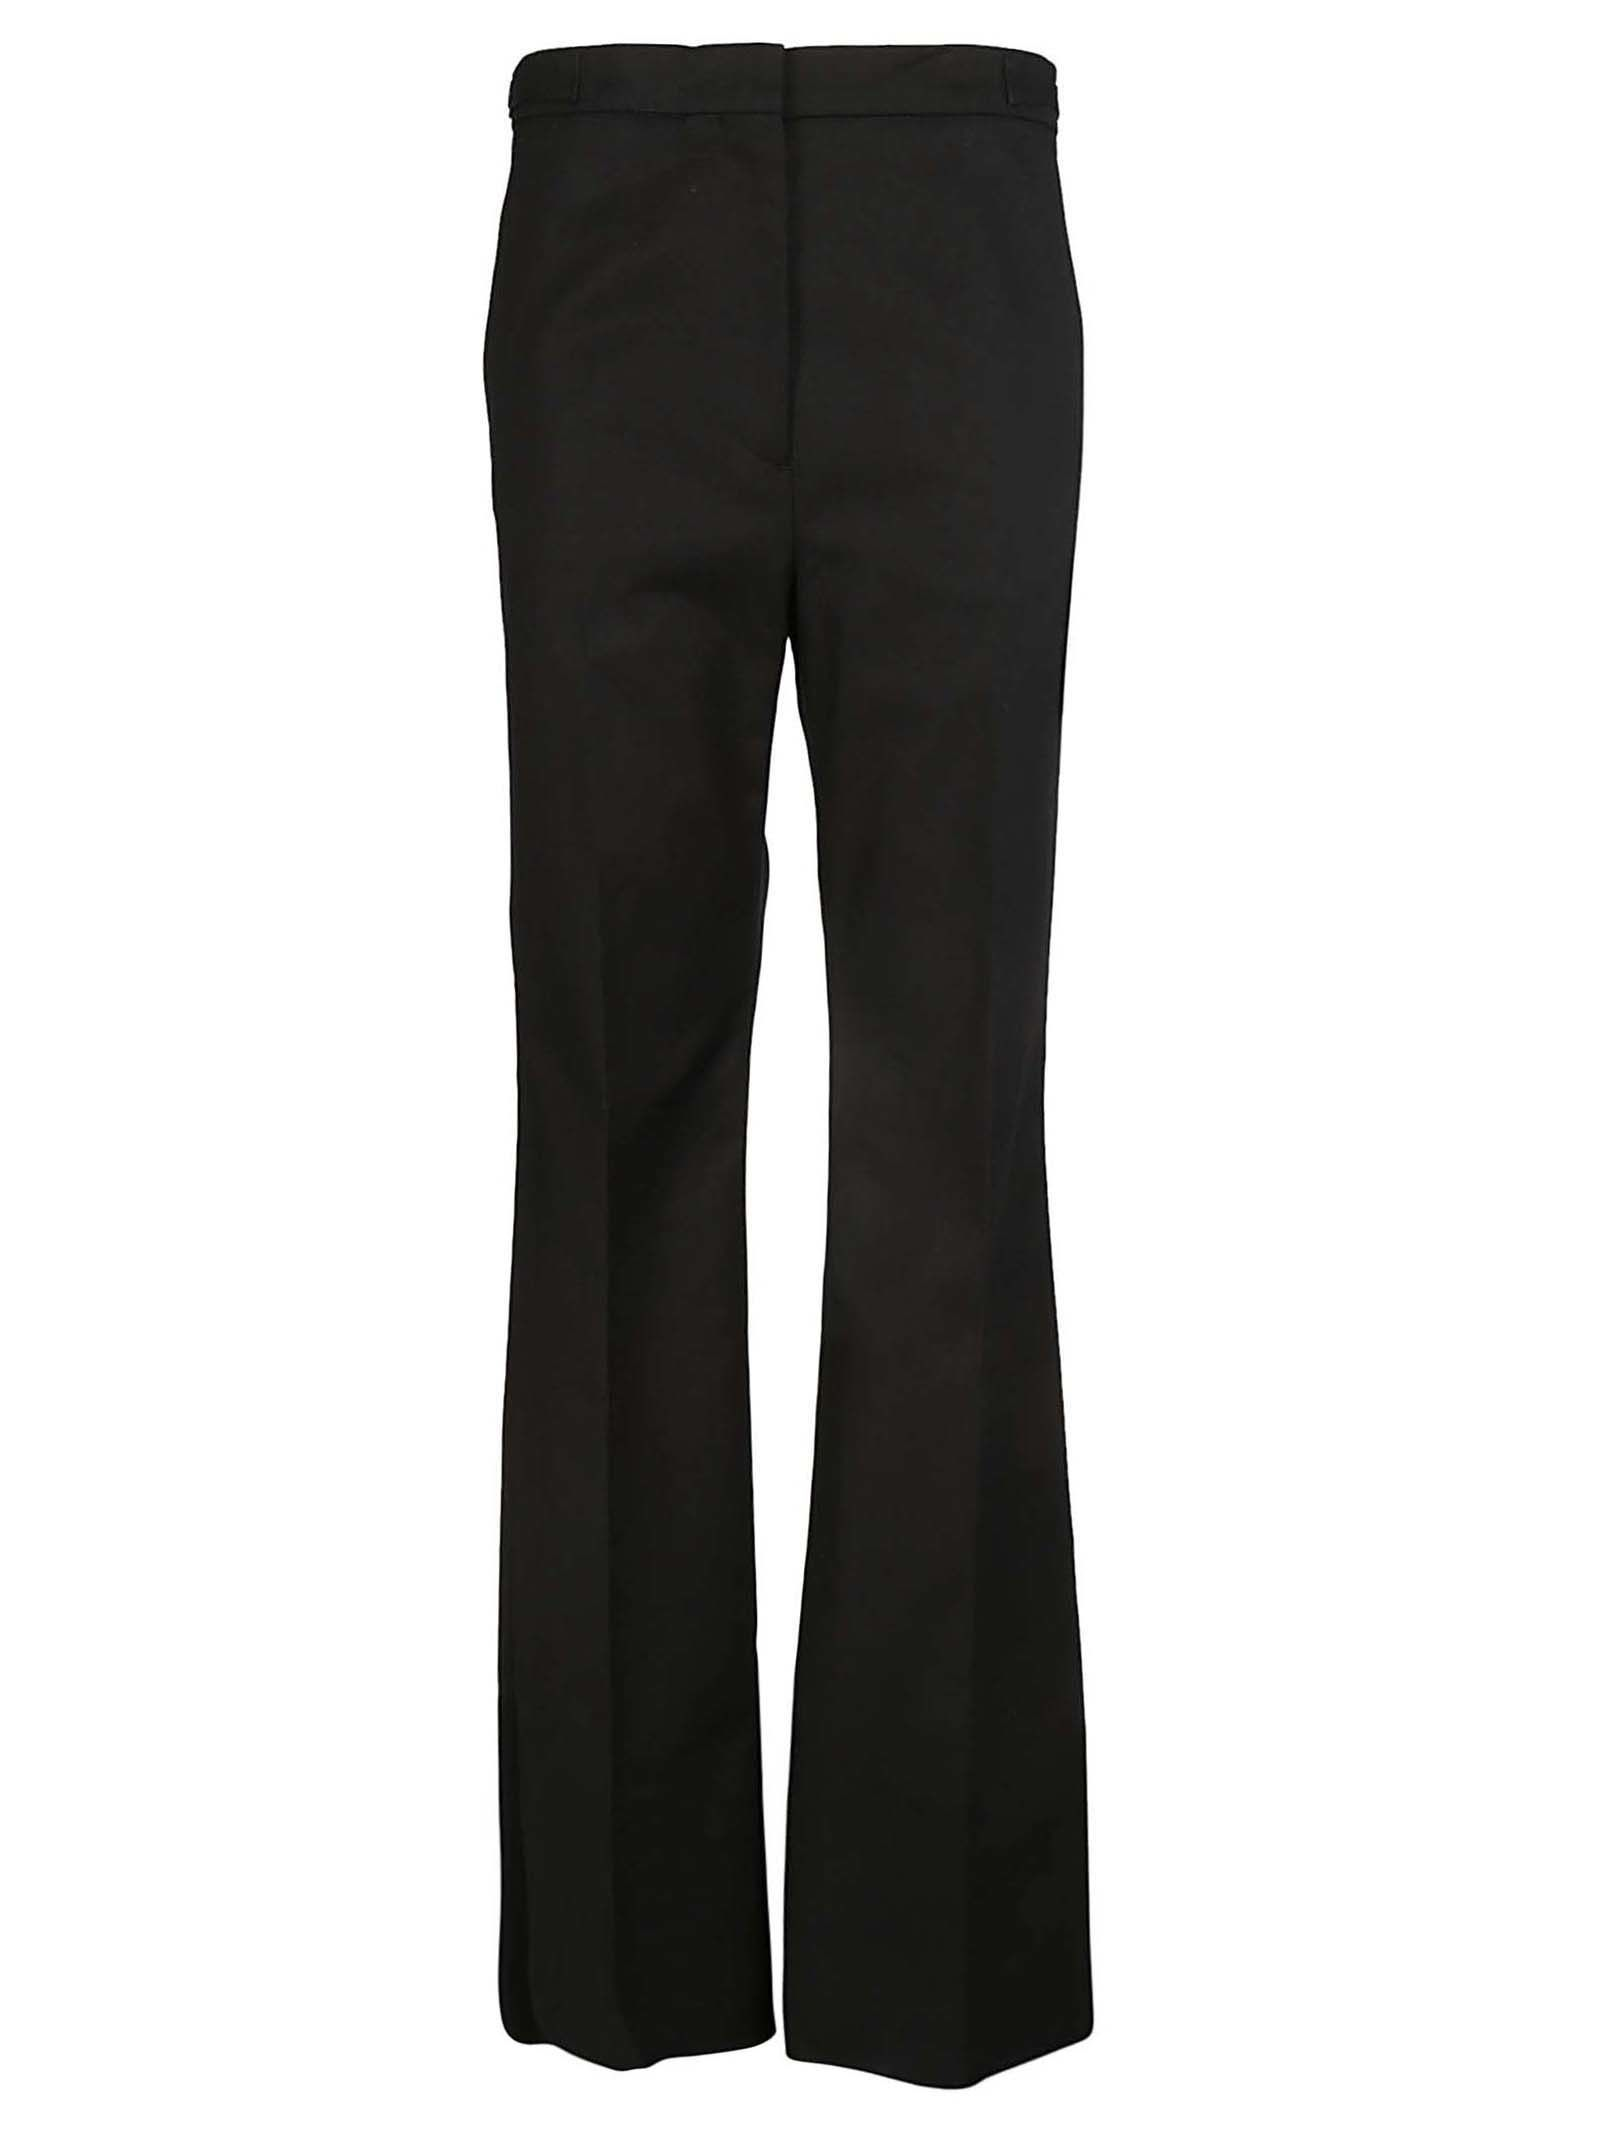 FLARED BOTTOM TROUSERS from Italist.com